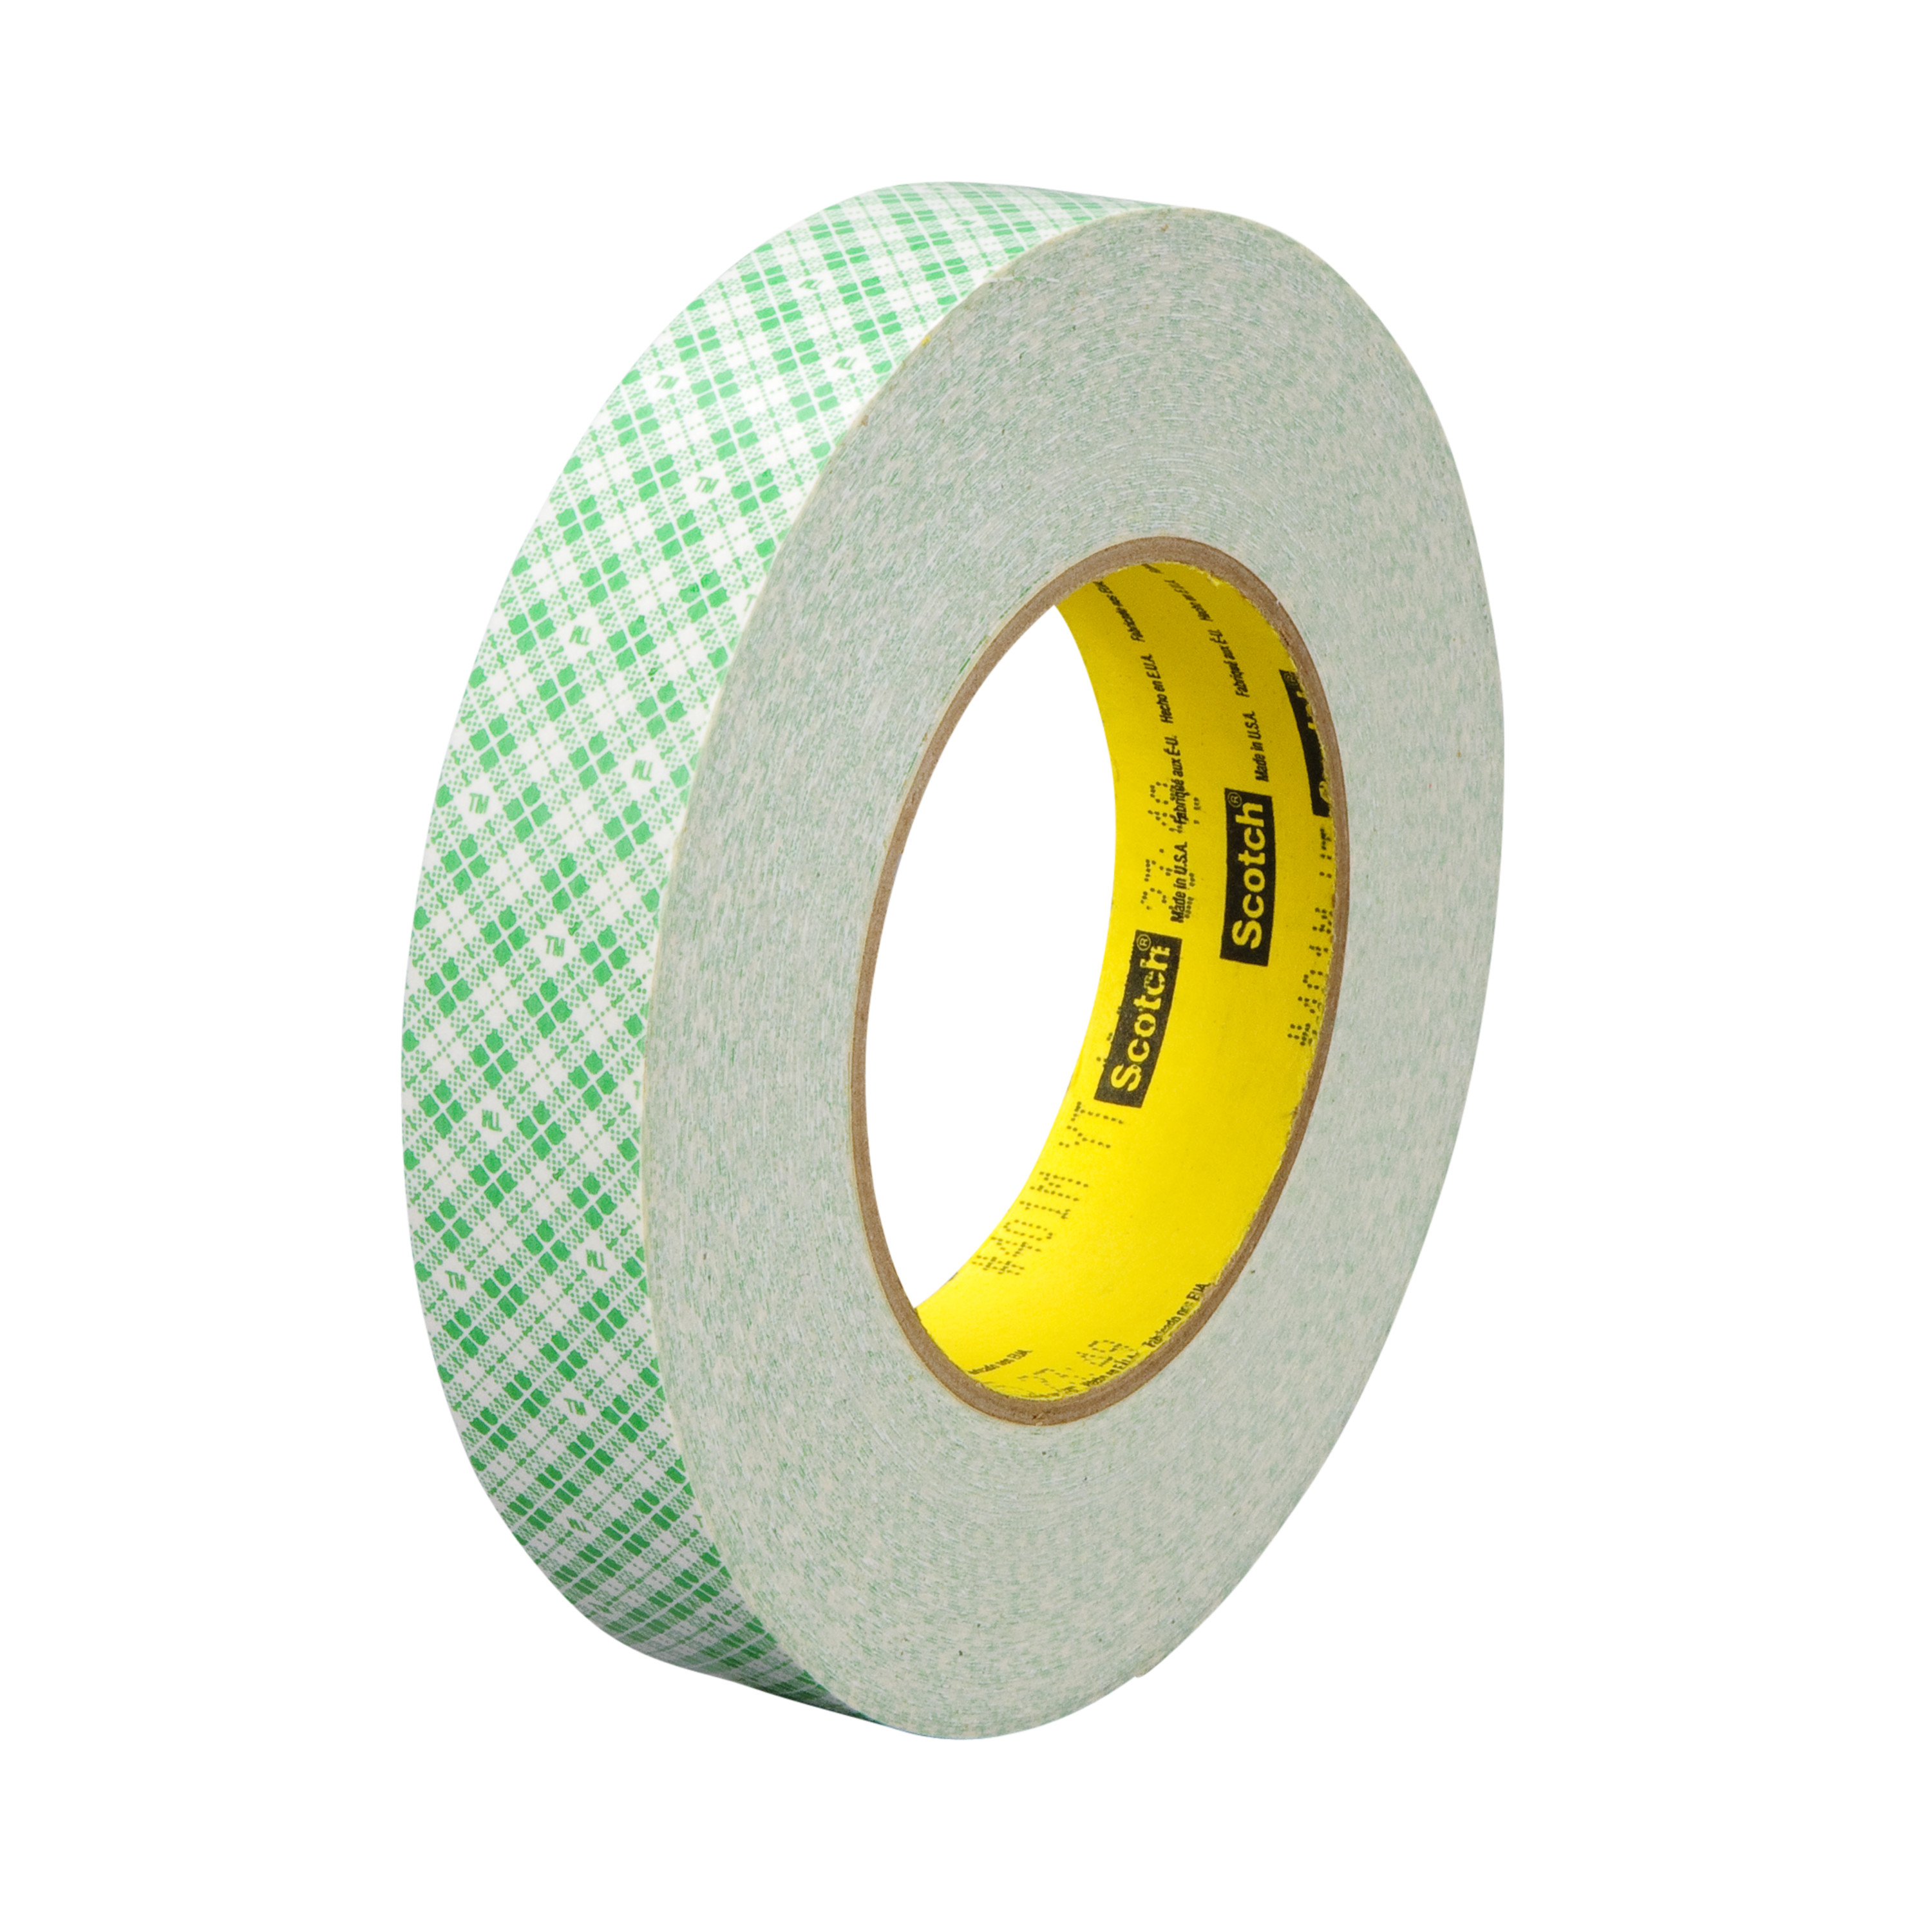 3M™ Double Coated Paper Tape 401M, Natural, 9 mil, Roll, Config